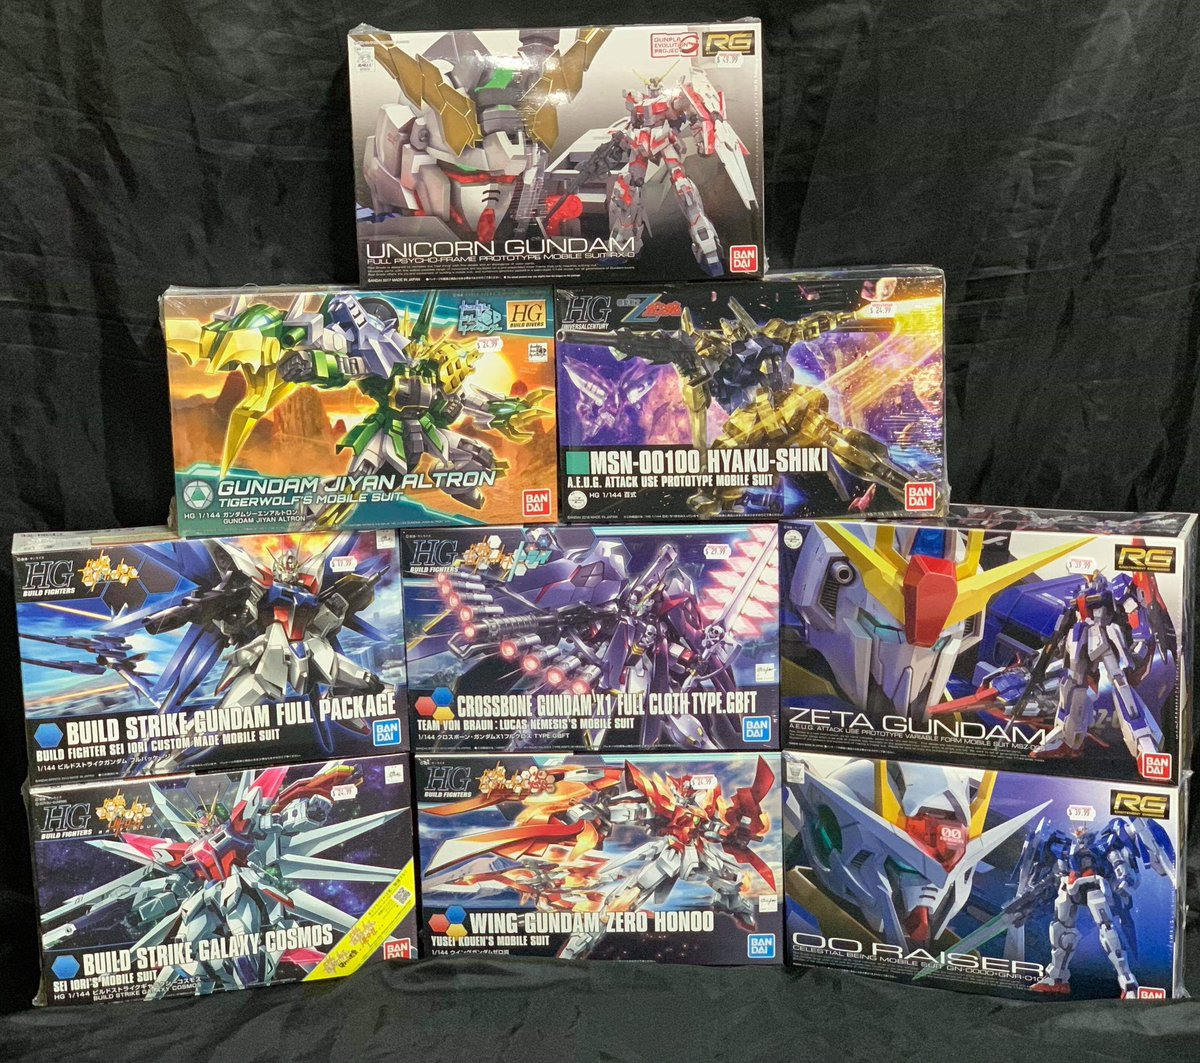 Gunpla on gunpla on gunpla!  Be sure to stop by Heroes & Fantasies this weekend - We've restocked our Gundam Model Kits!  Suit up!  ▪️ ▪️ ▪️ #Gundam #Gunpla #Bandai #Model #ModelKit #Collect #Collector #Build #LCS #LocalComicShop #SanAntonio #Texas